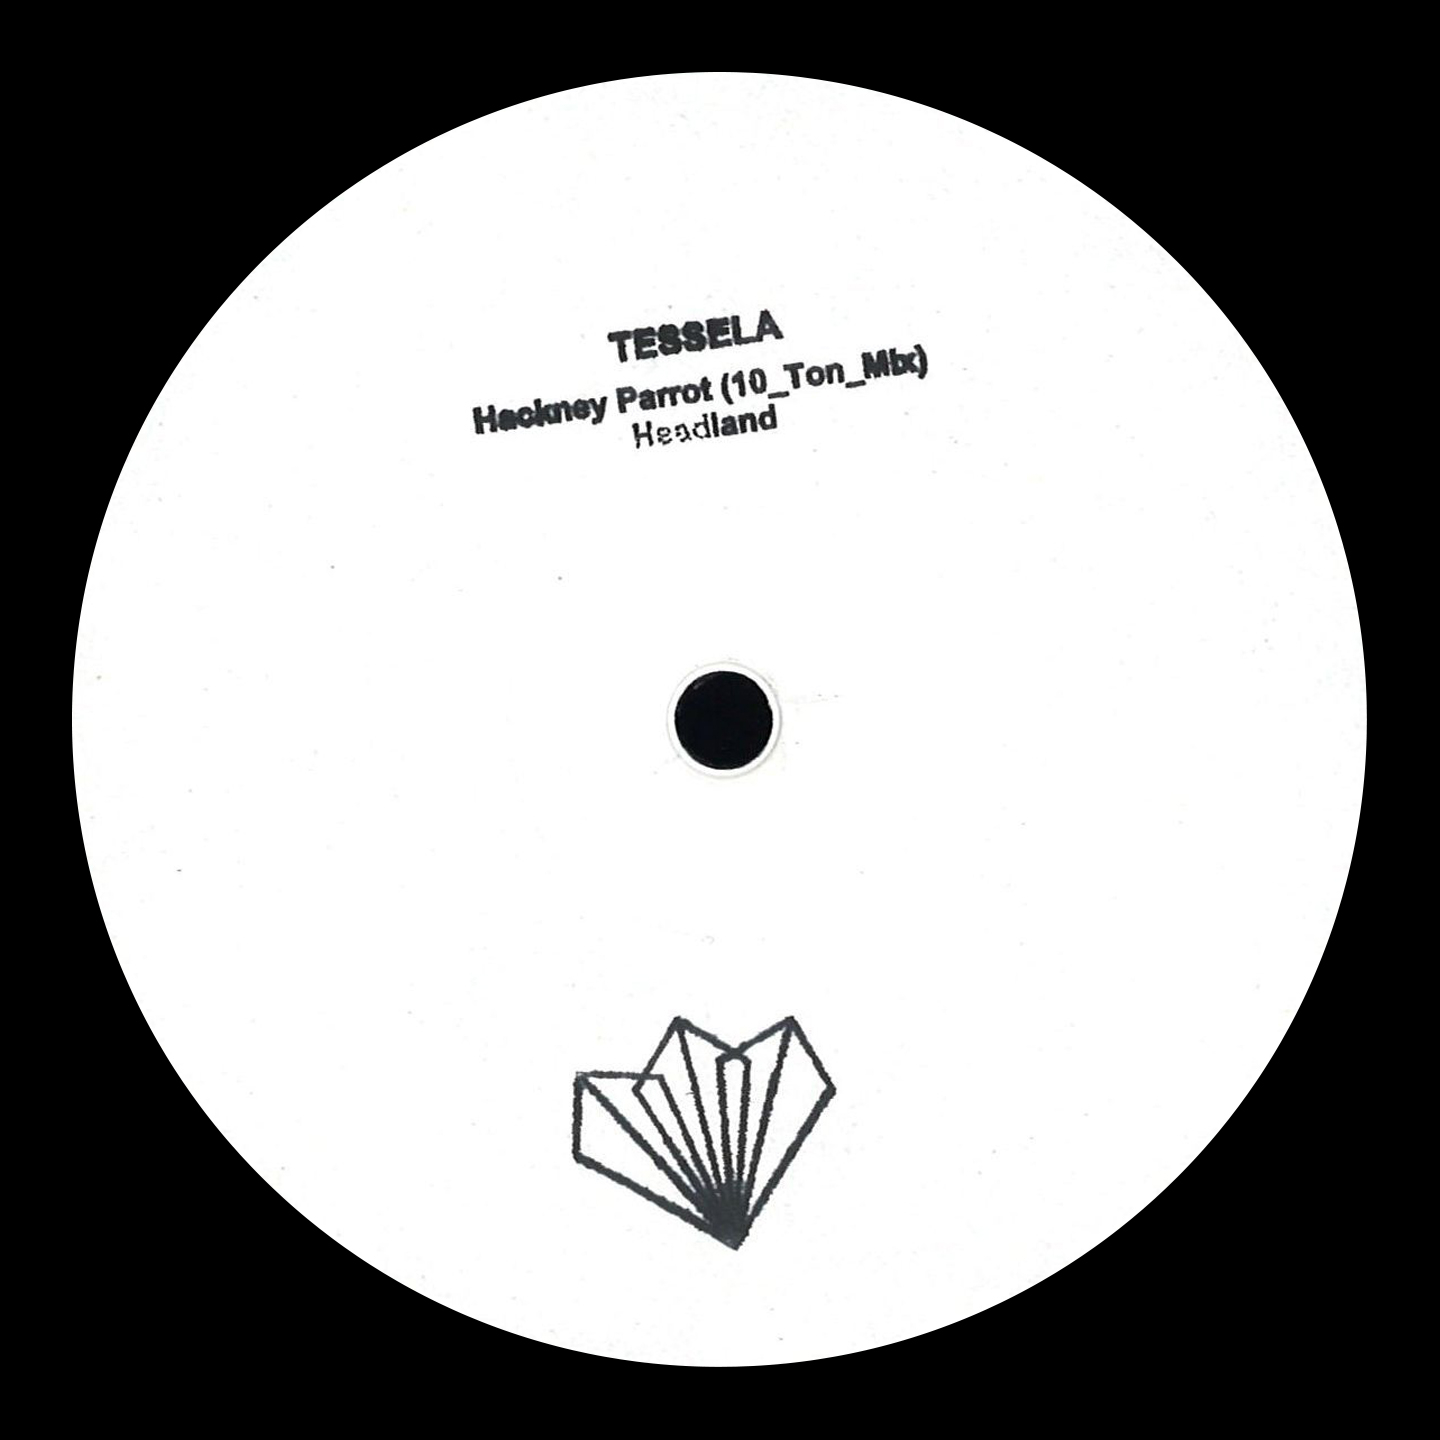 Tessela ‎- Hackney Parrot (10 Ton Mix) / Headland